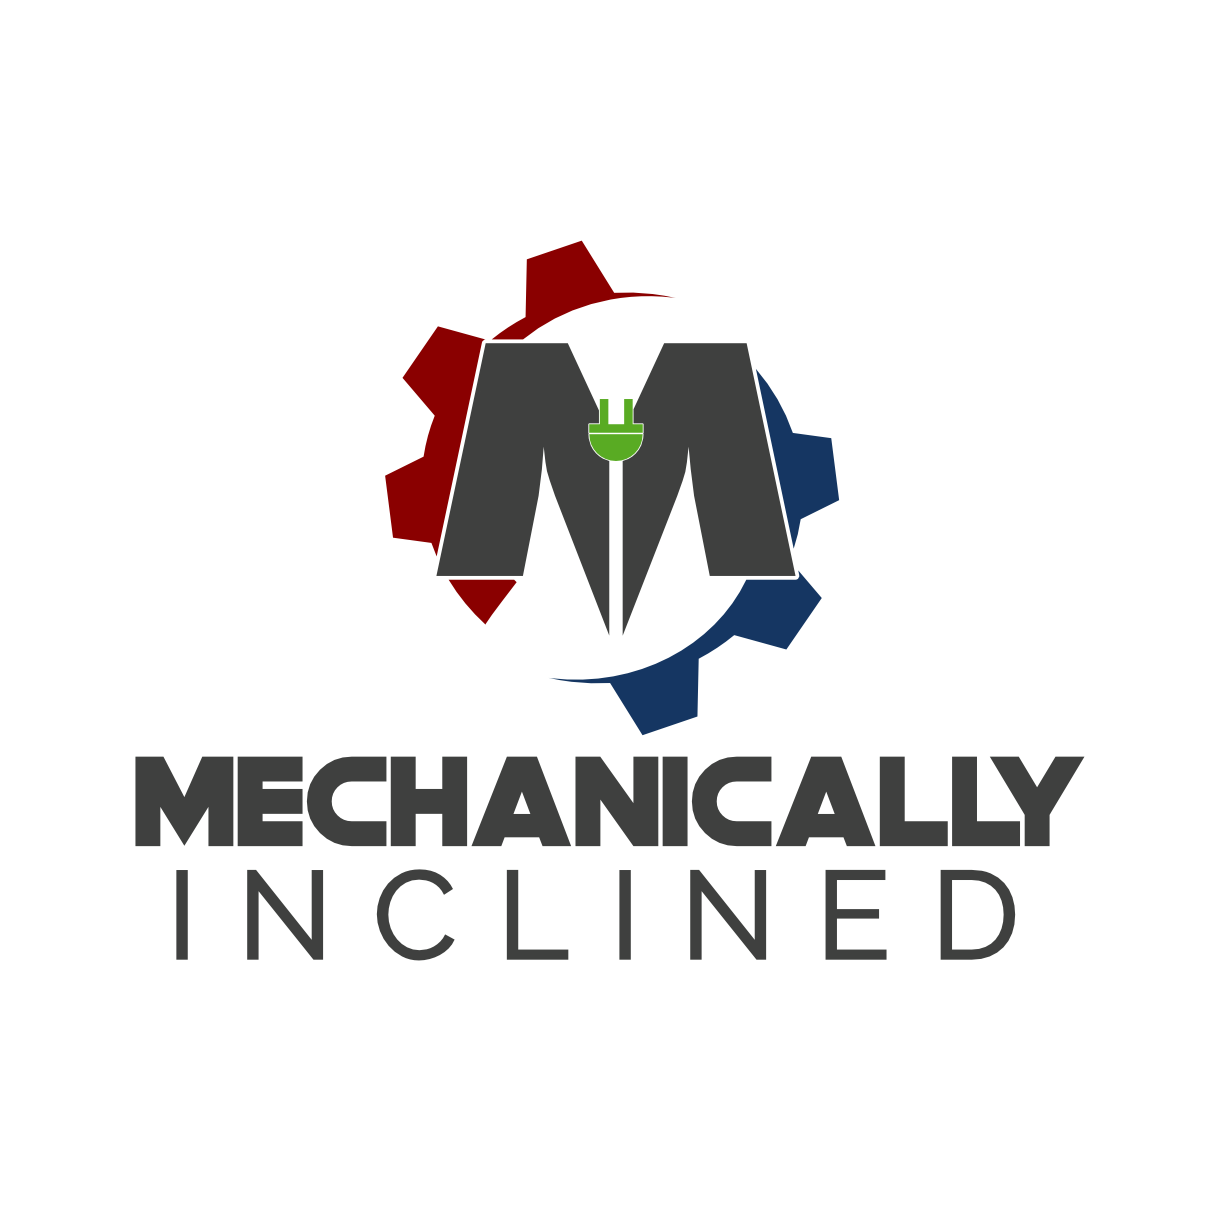 Mechanically Inclined LLC image 1